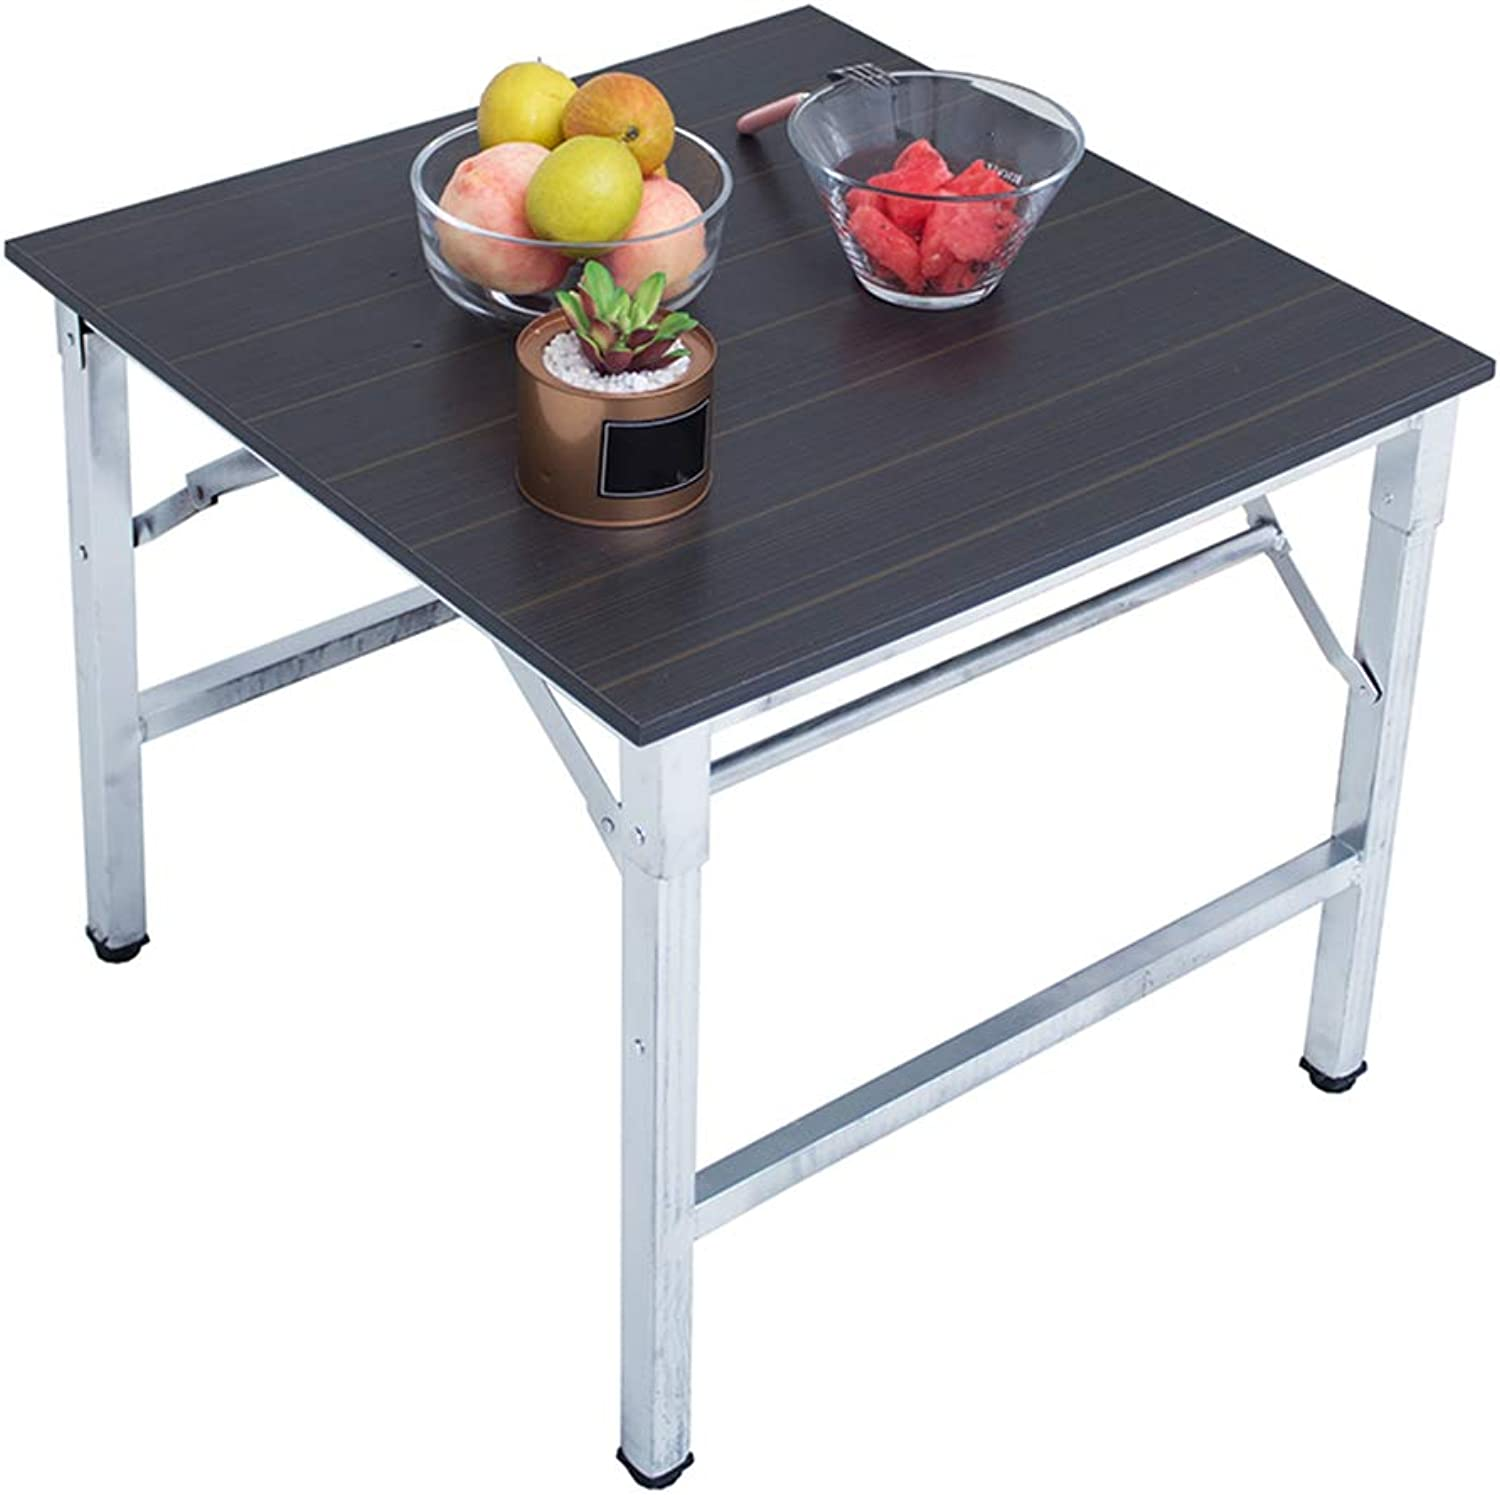 NJLC Folding Small Table, Portable Dining Table Small Table Simple Household Folding Table,60×60×50cm